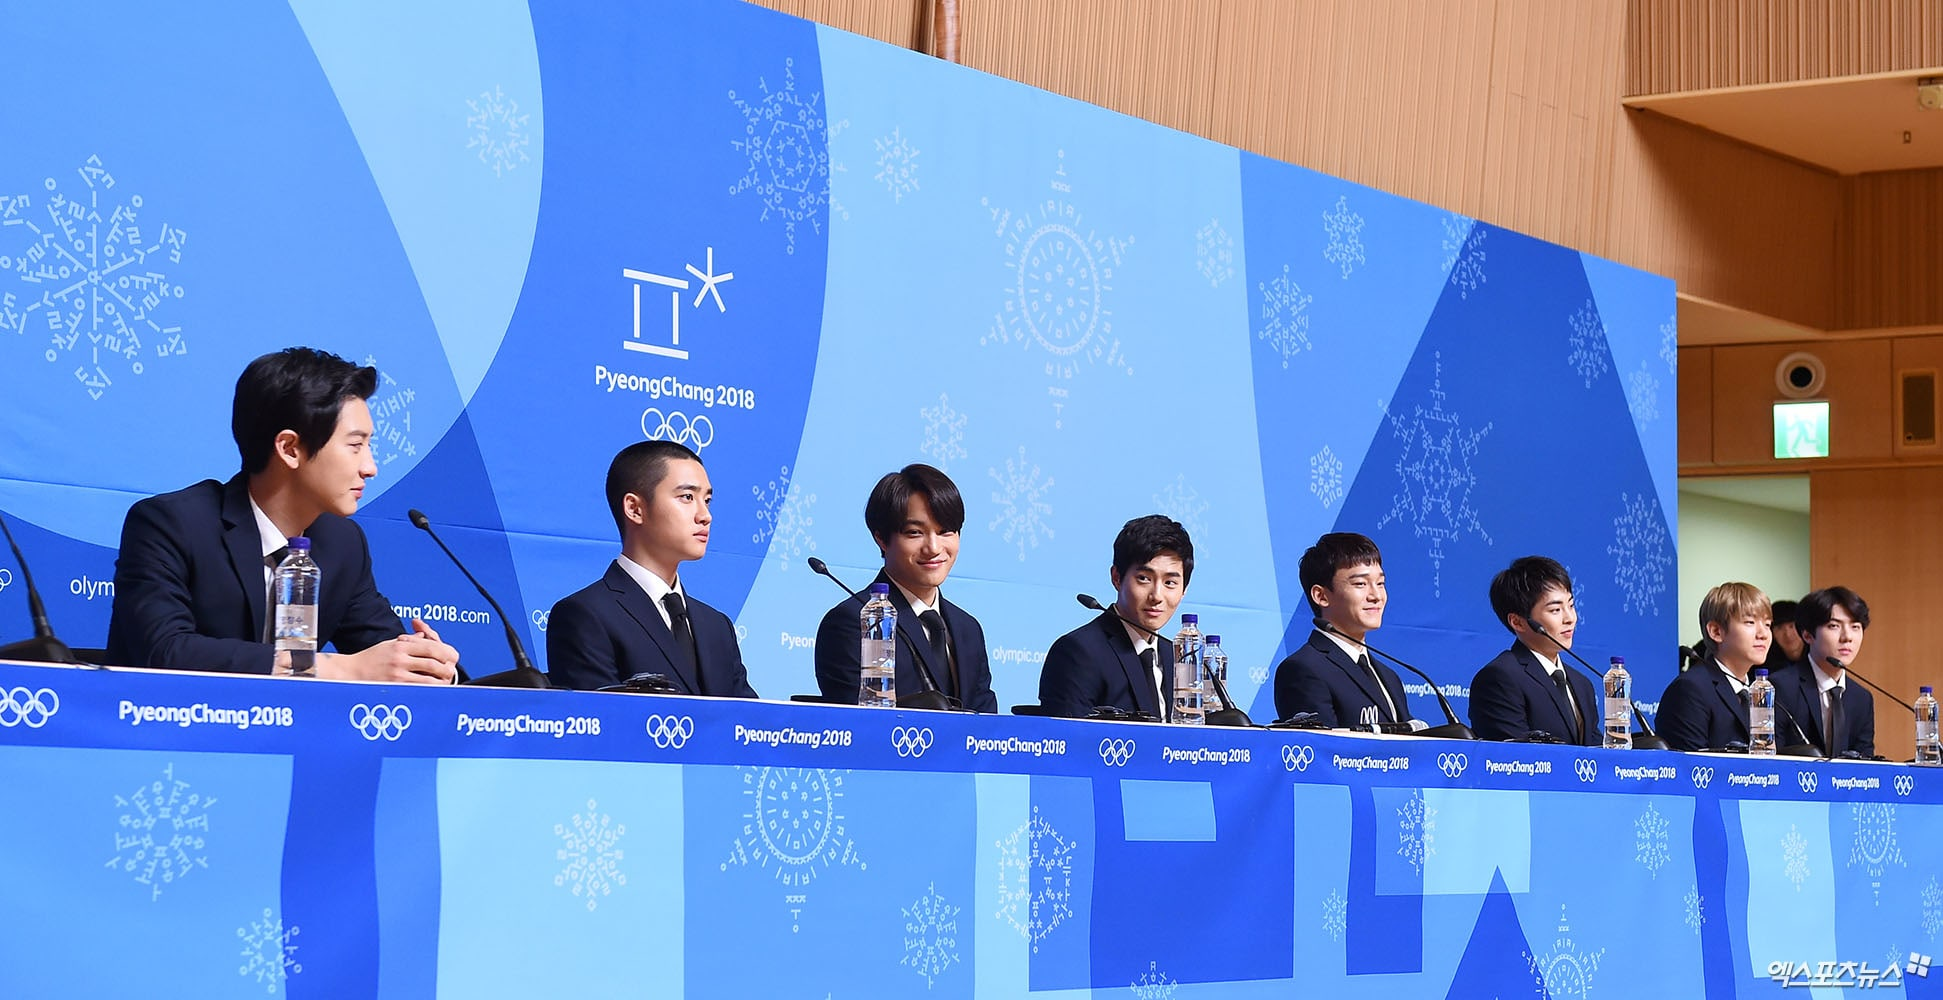 (Olympics) PyeongChang's closing ceremony to include 8-minute preview of Beijing 2022